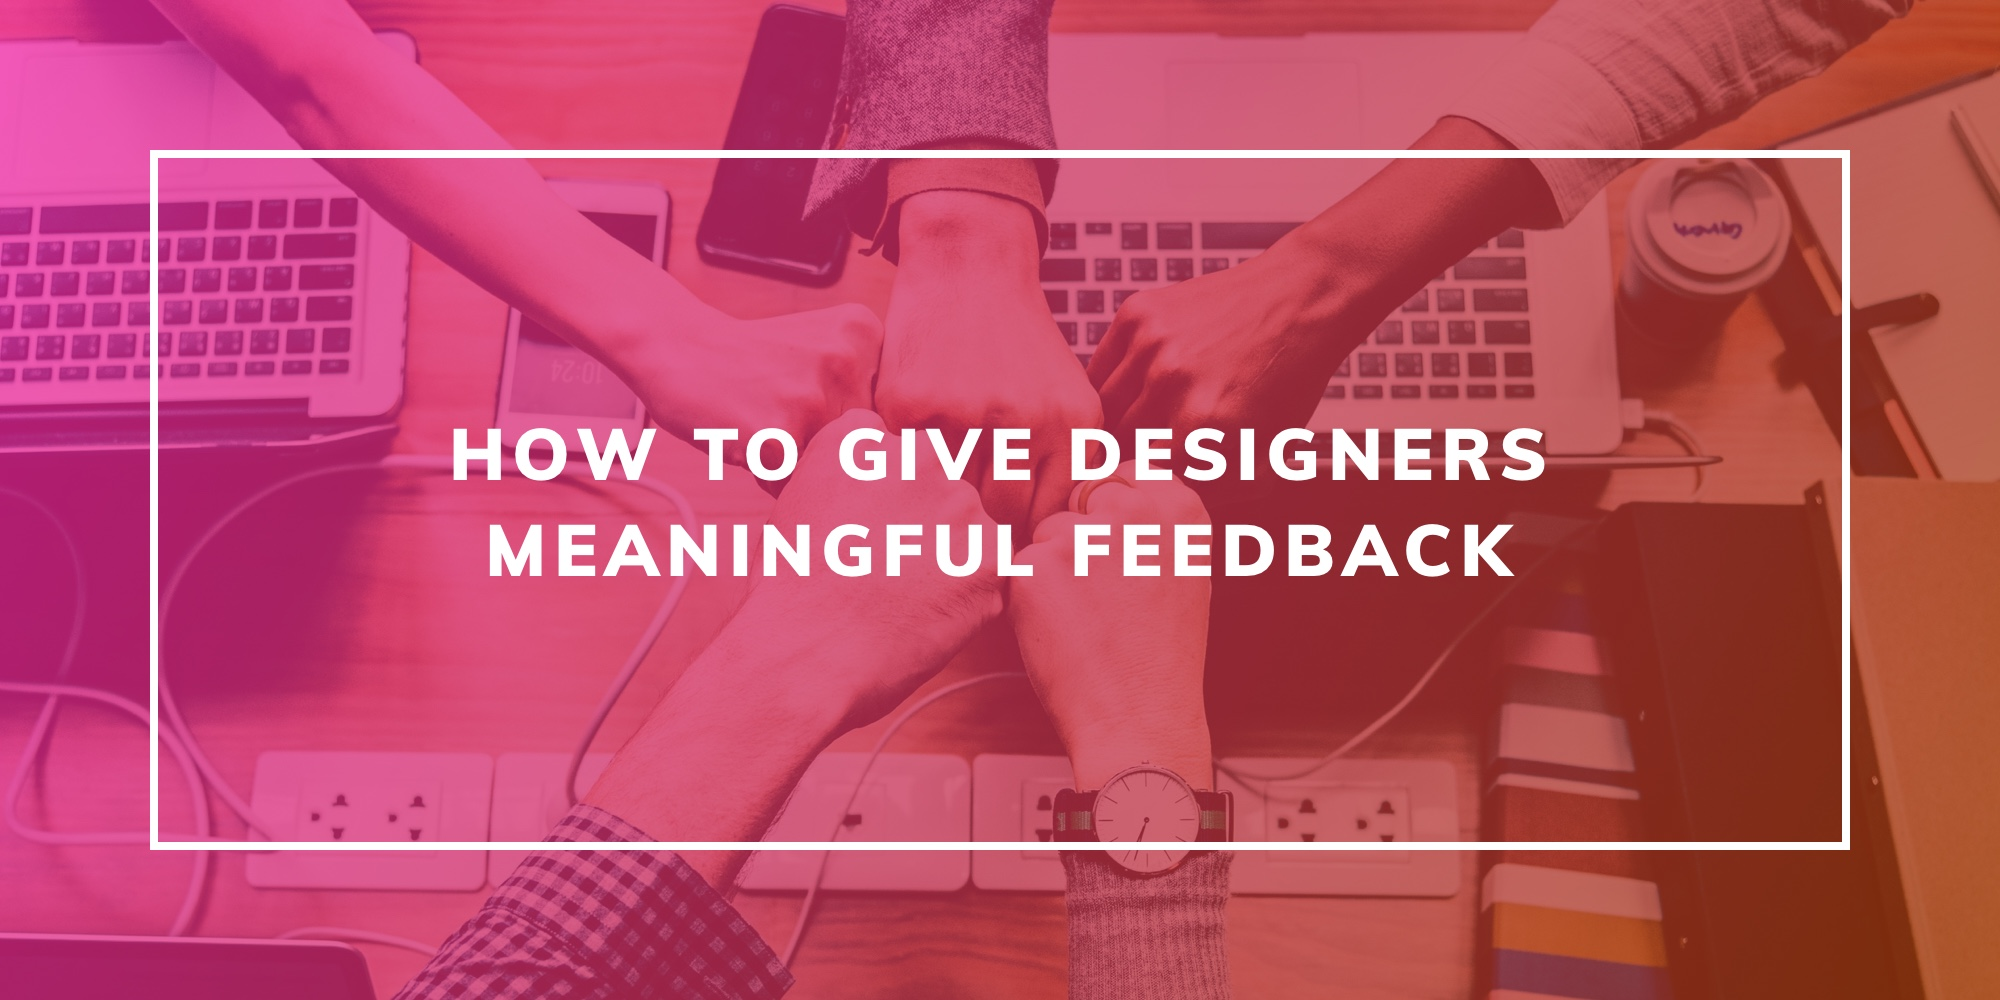 How to give designers meaningful feedback blog image